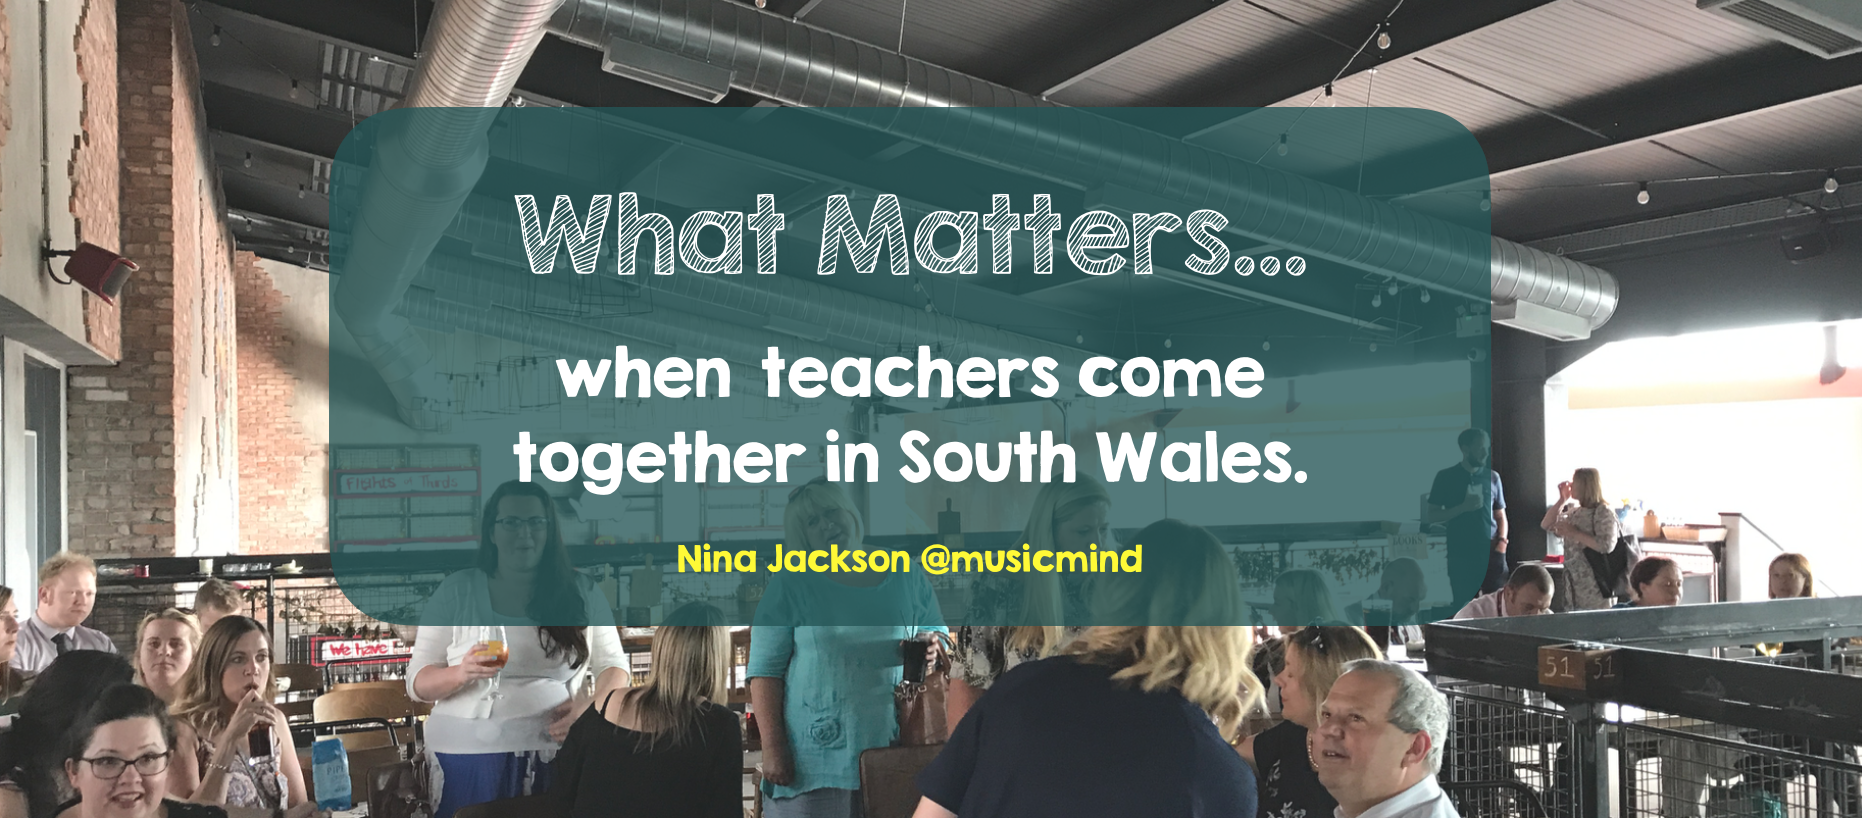 What matters…when teachers come together in South Wales